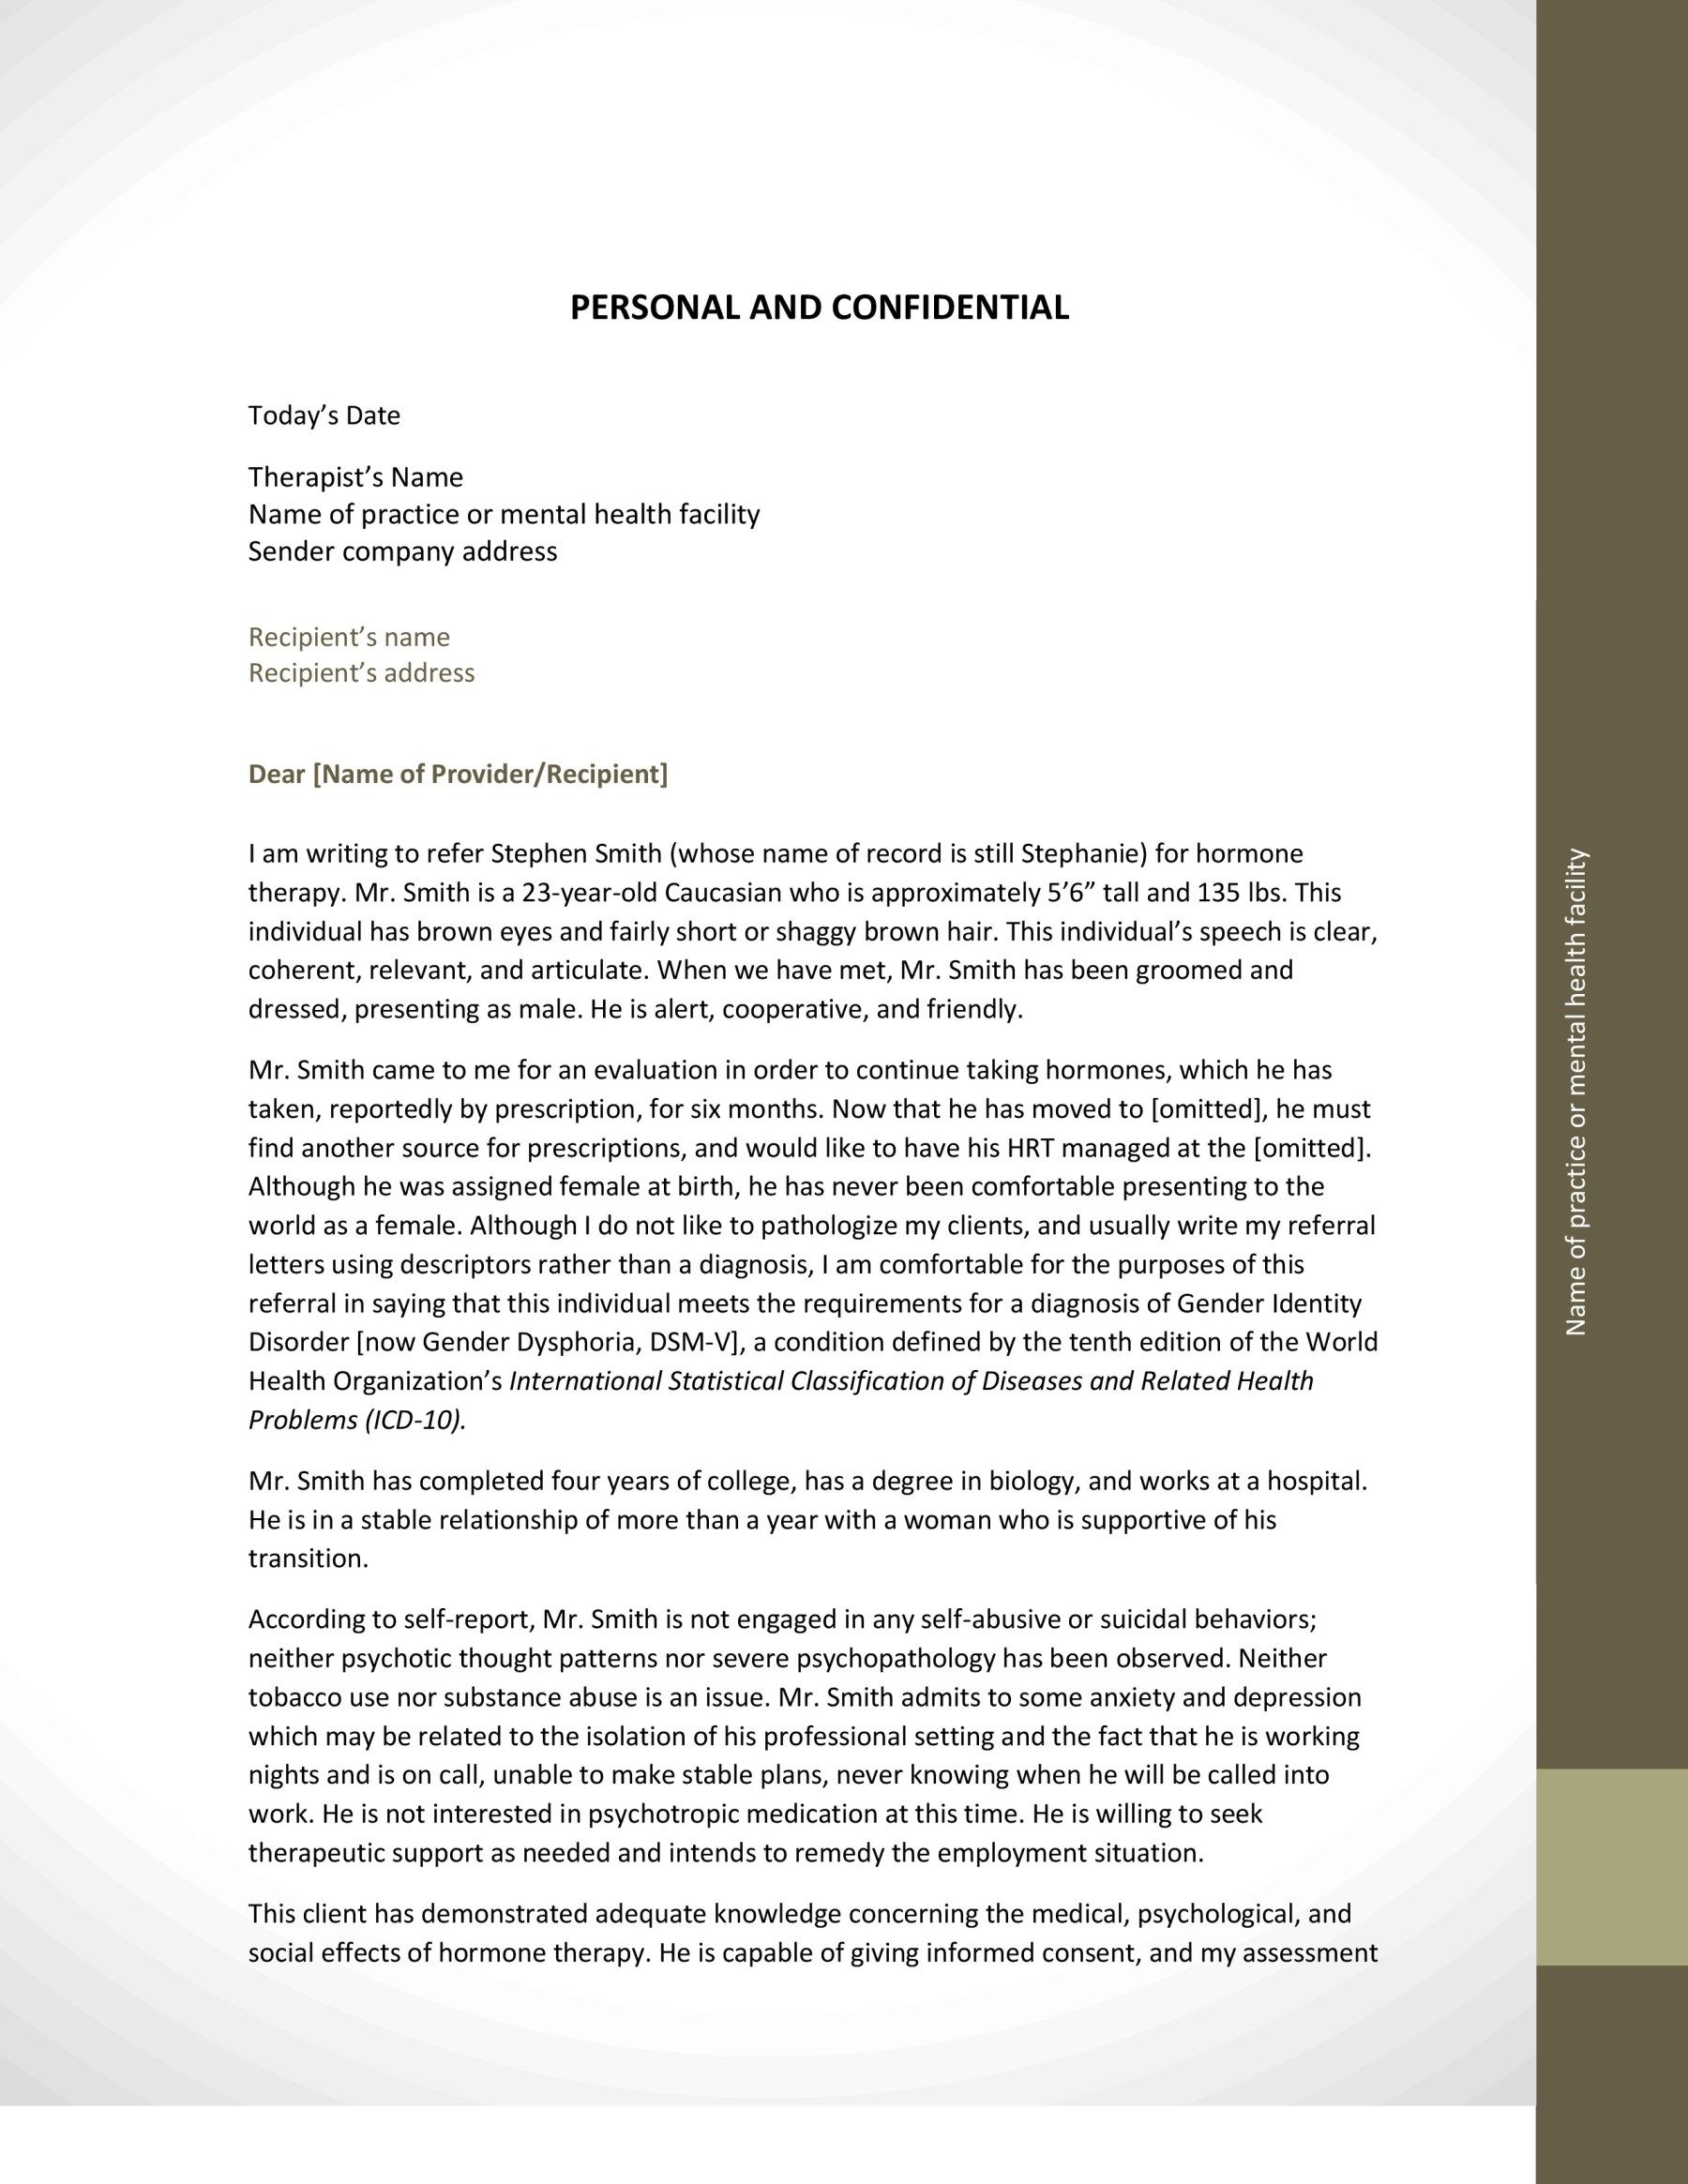 Company Referral Letter Impressive Hrt Referral Letter Examplepage0  Mine  Pinterest  Referral .